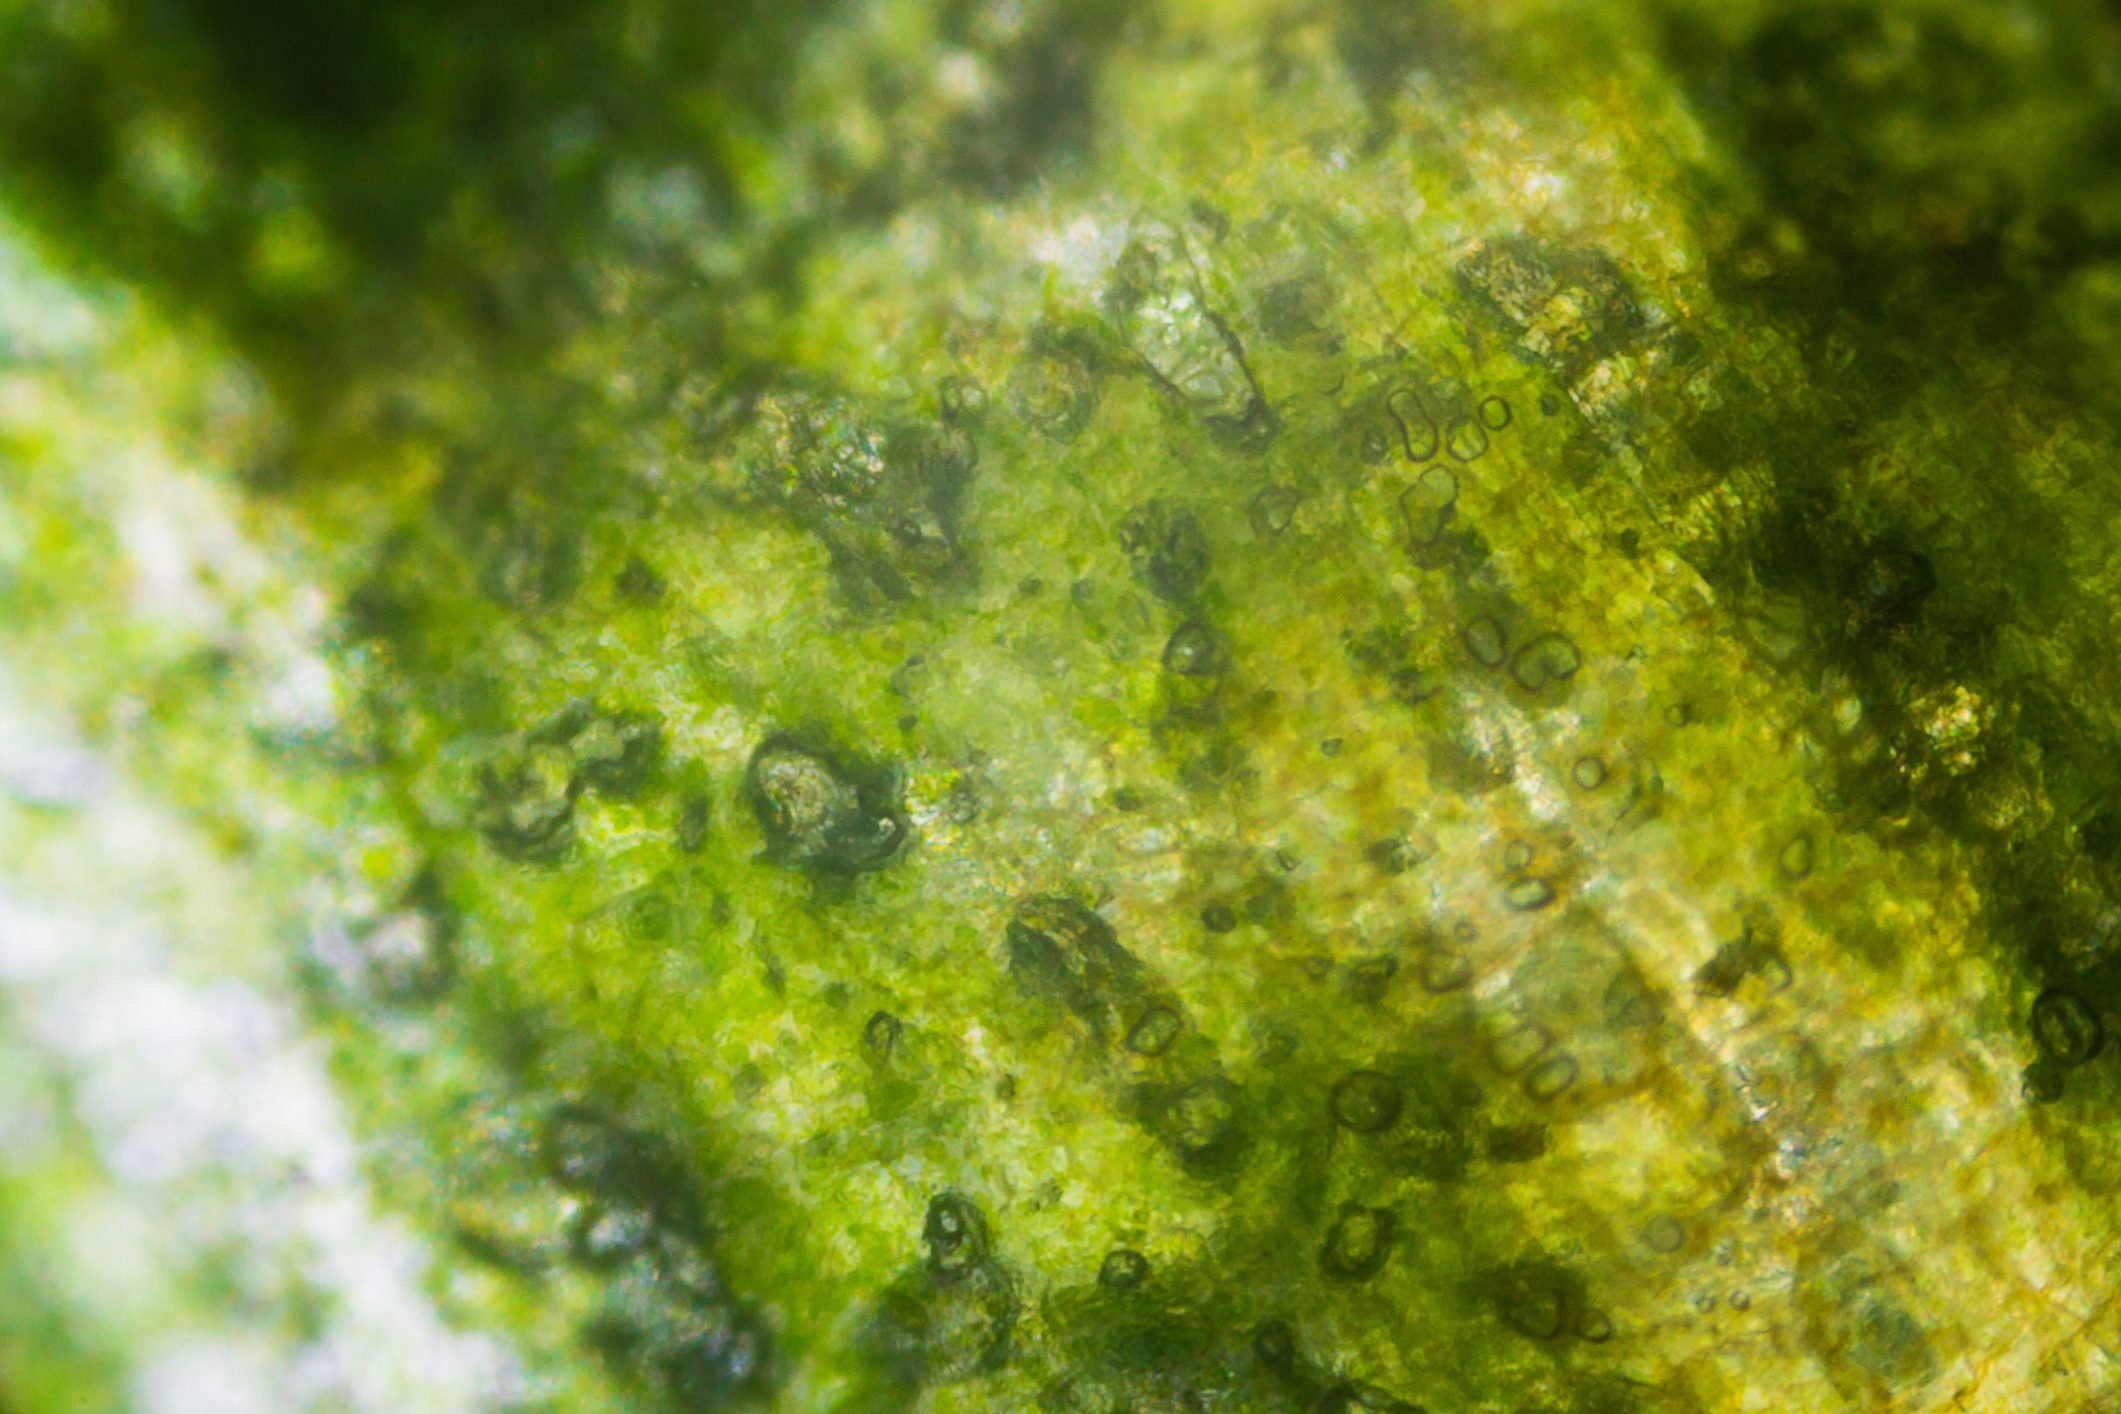 Pickled cucumber under the microscope